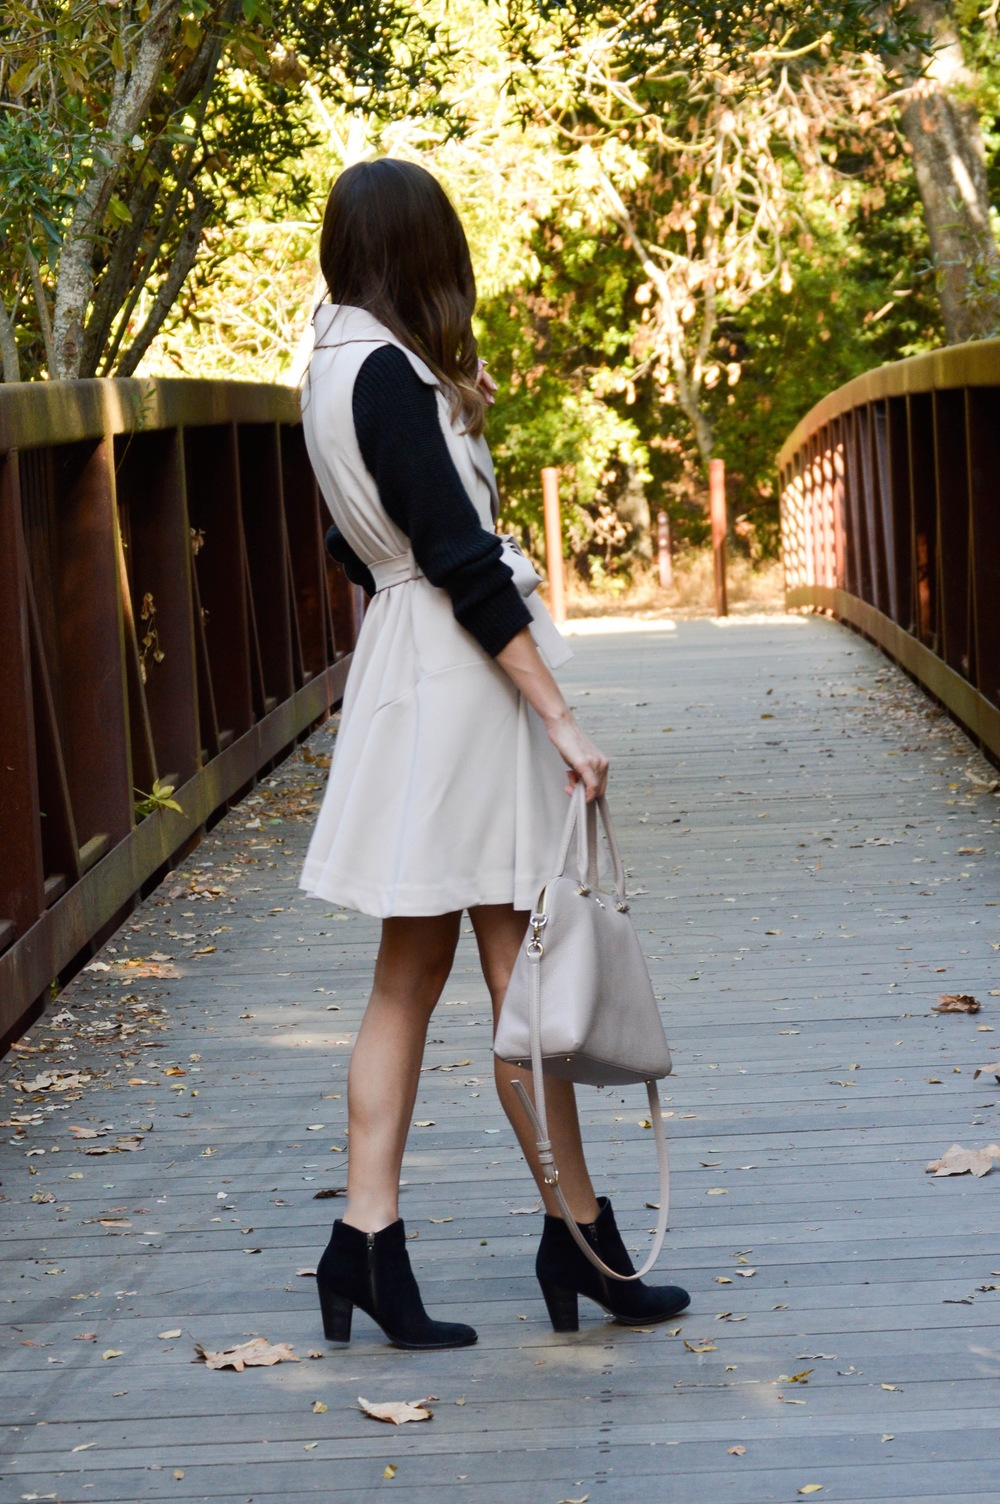 Shop the Look Below. Trench: c/o  Chic Wish . Dress: Merona (old). Similar  here . Booties:  Cole Haan . Bag:  Kate Spade . Watch:  Michael Kors . Sunglasses: See similar  here  and  here .